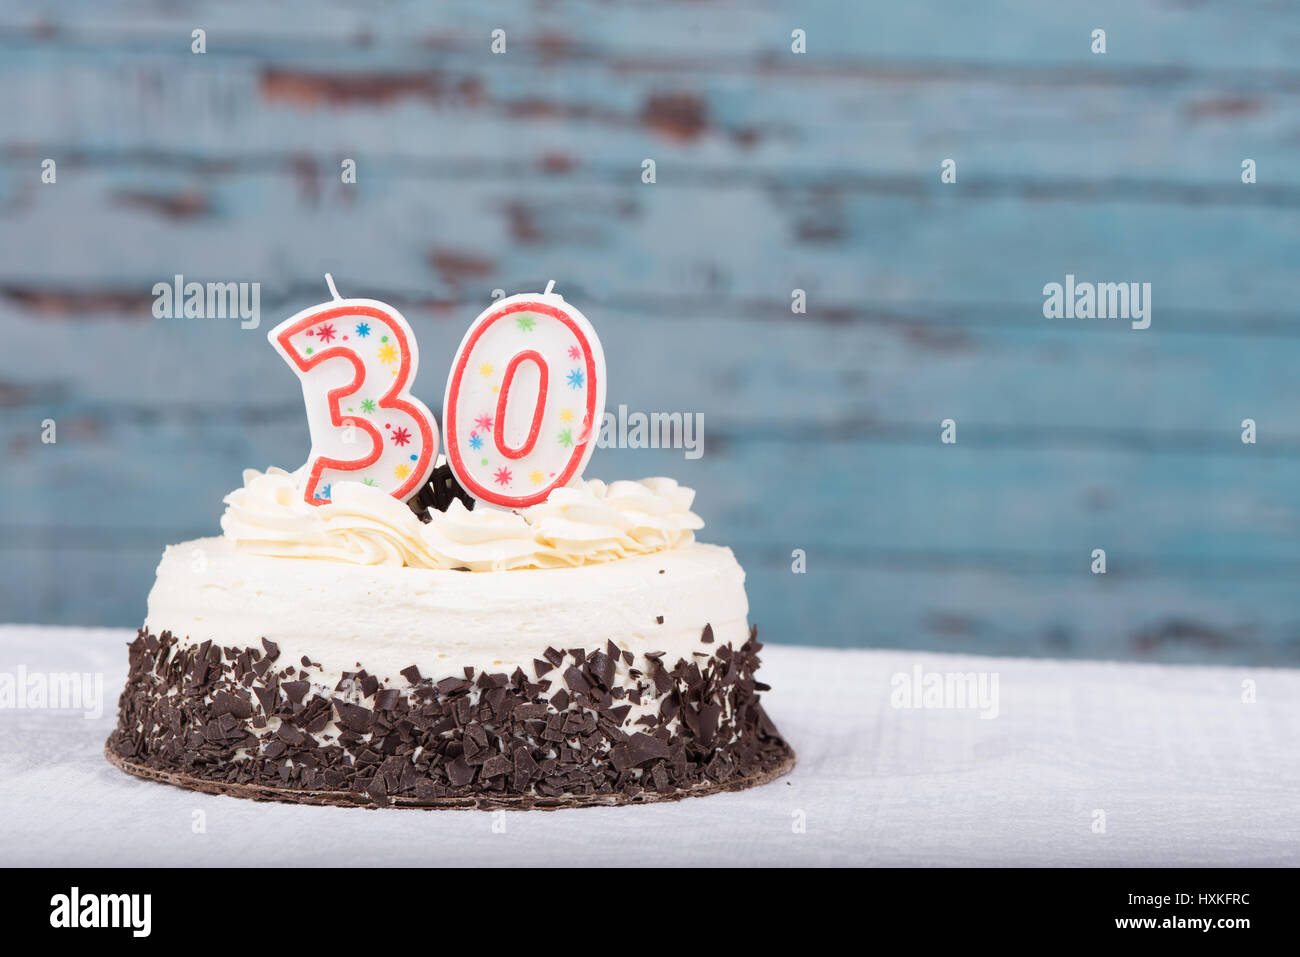 Frosted Cake With 30 Candles On It For Anniversary Or Birthday